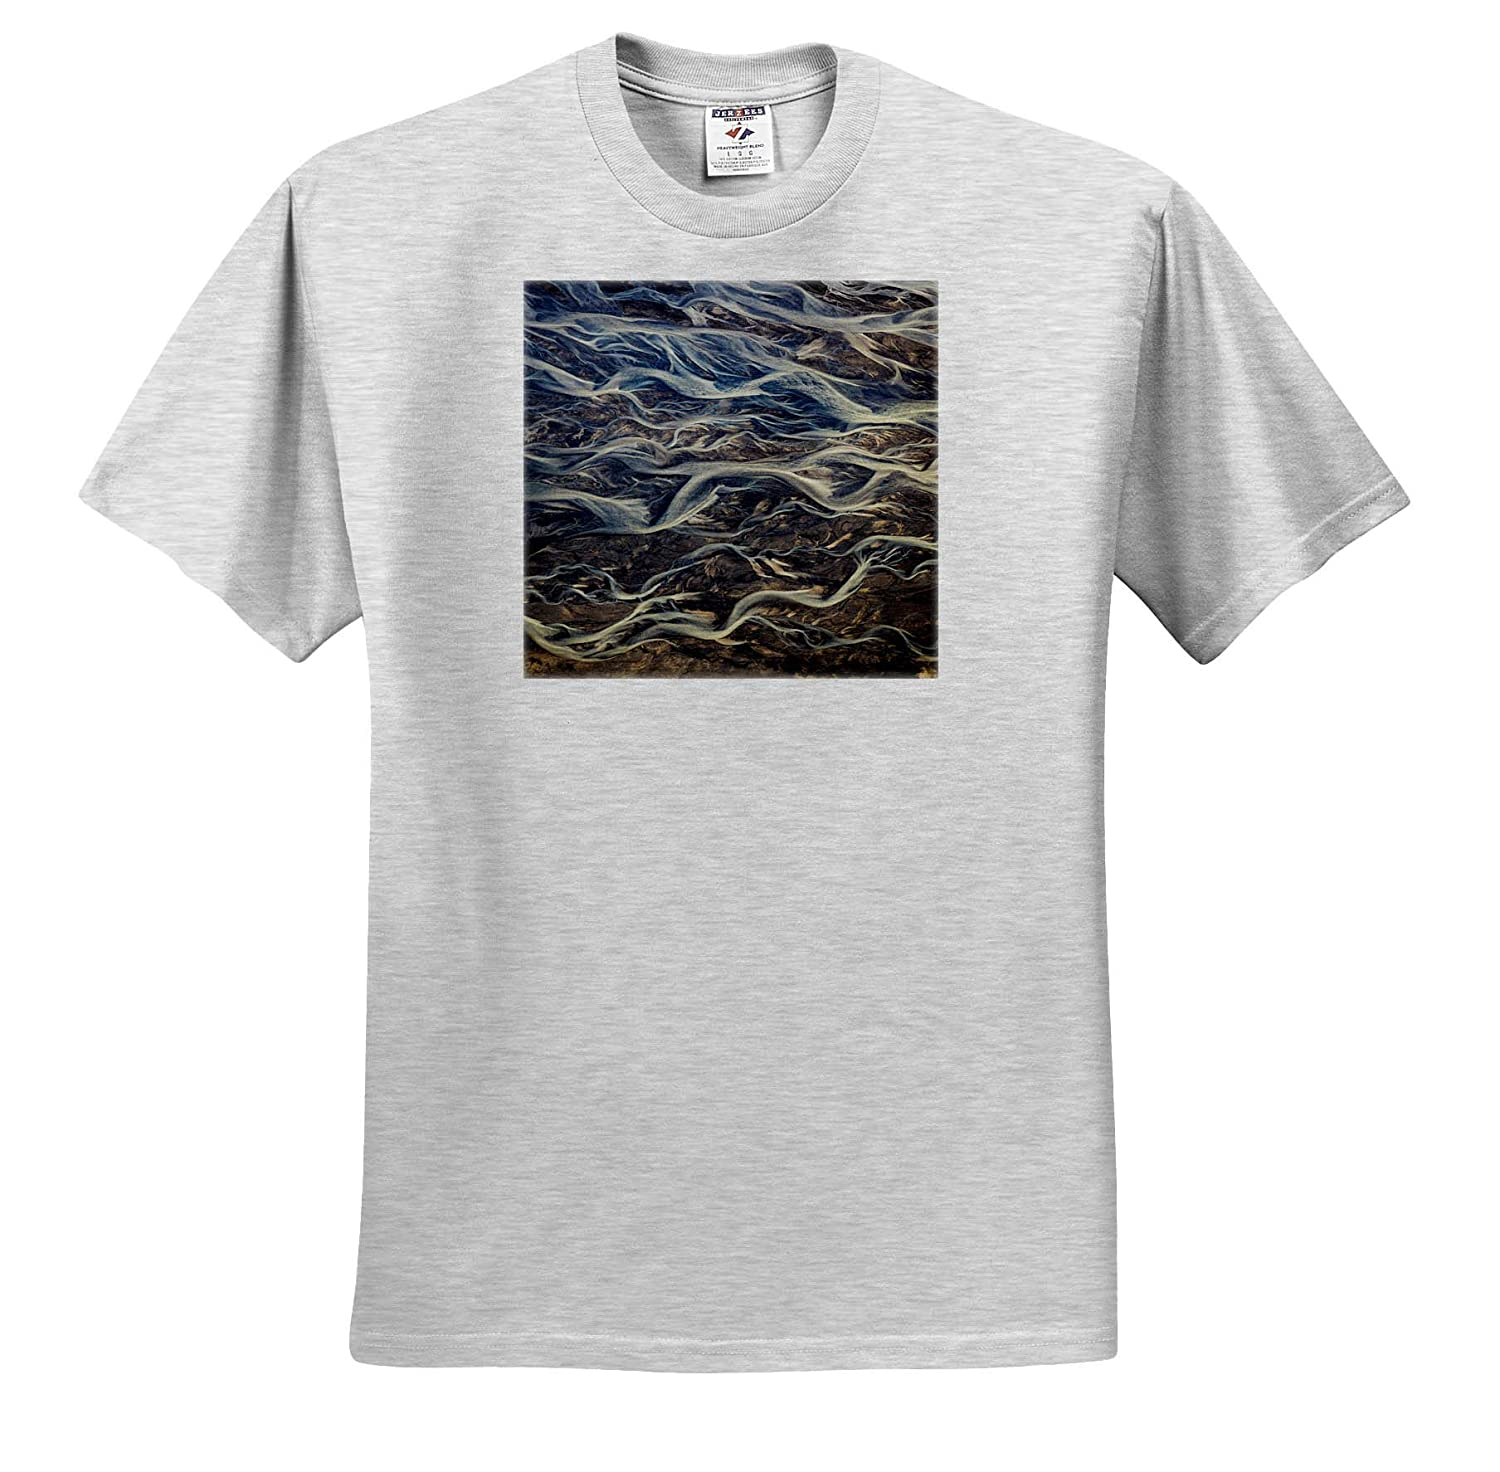 Adult T-Shirt XL ts/_313627 Abstracts Iceland Aerial of Braided Rivers 3dRose Danita Delimont